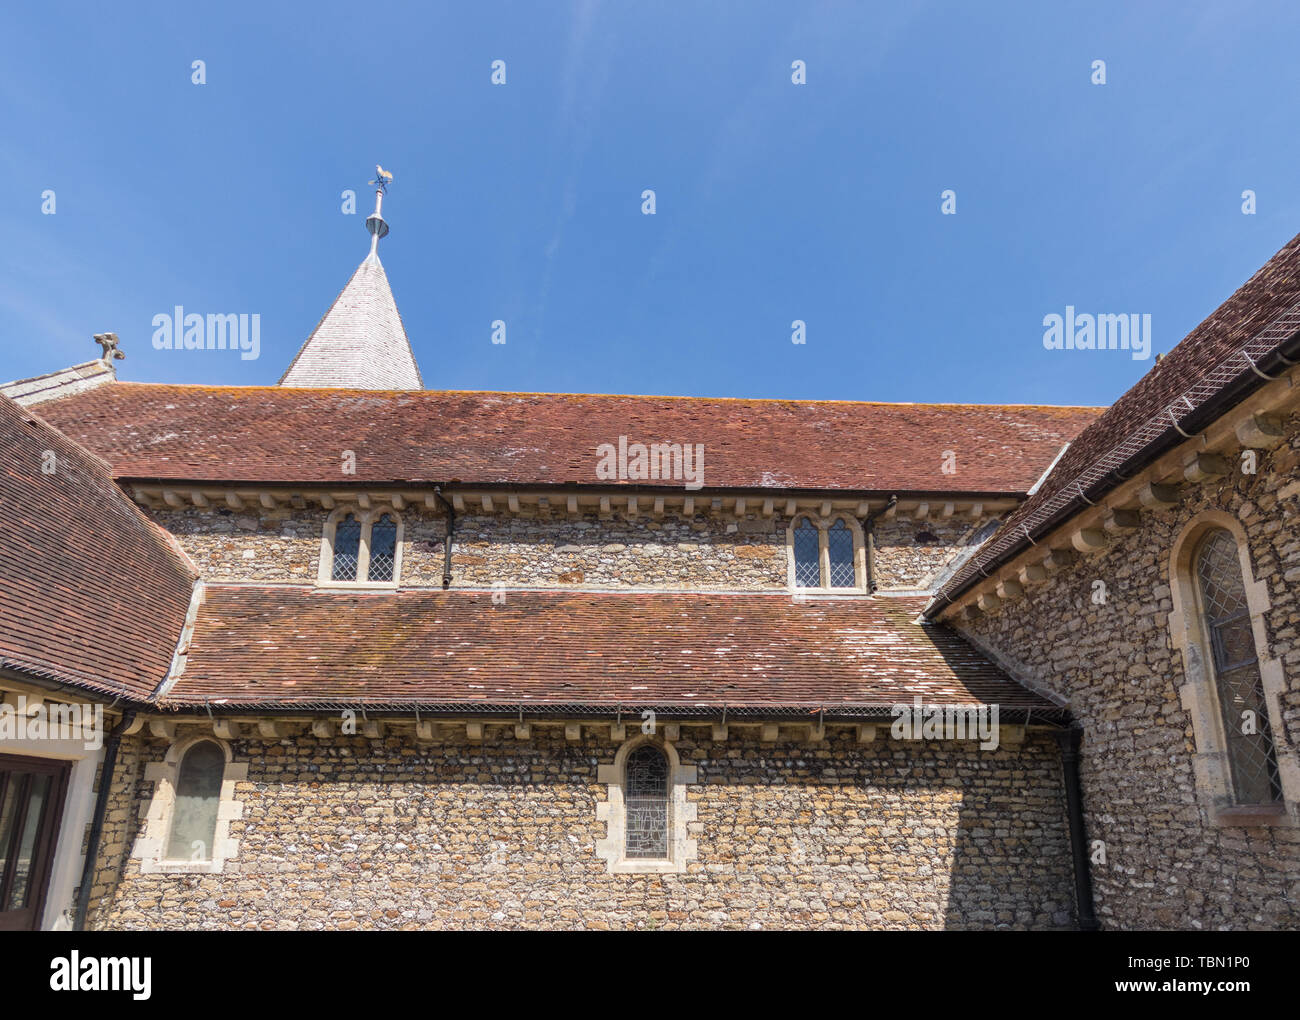 St Thomas a Becket church, Pagham, West Sussex, UK - Stock Image